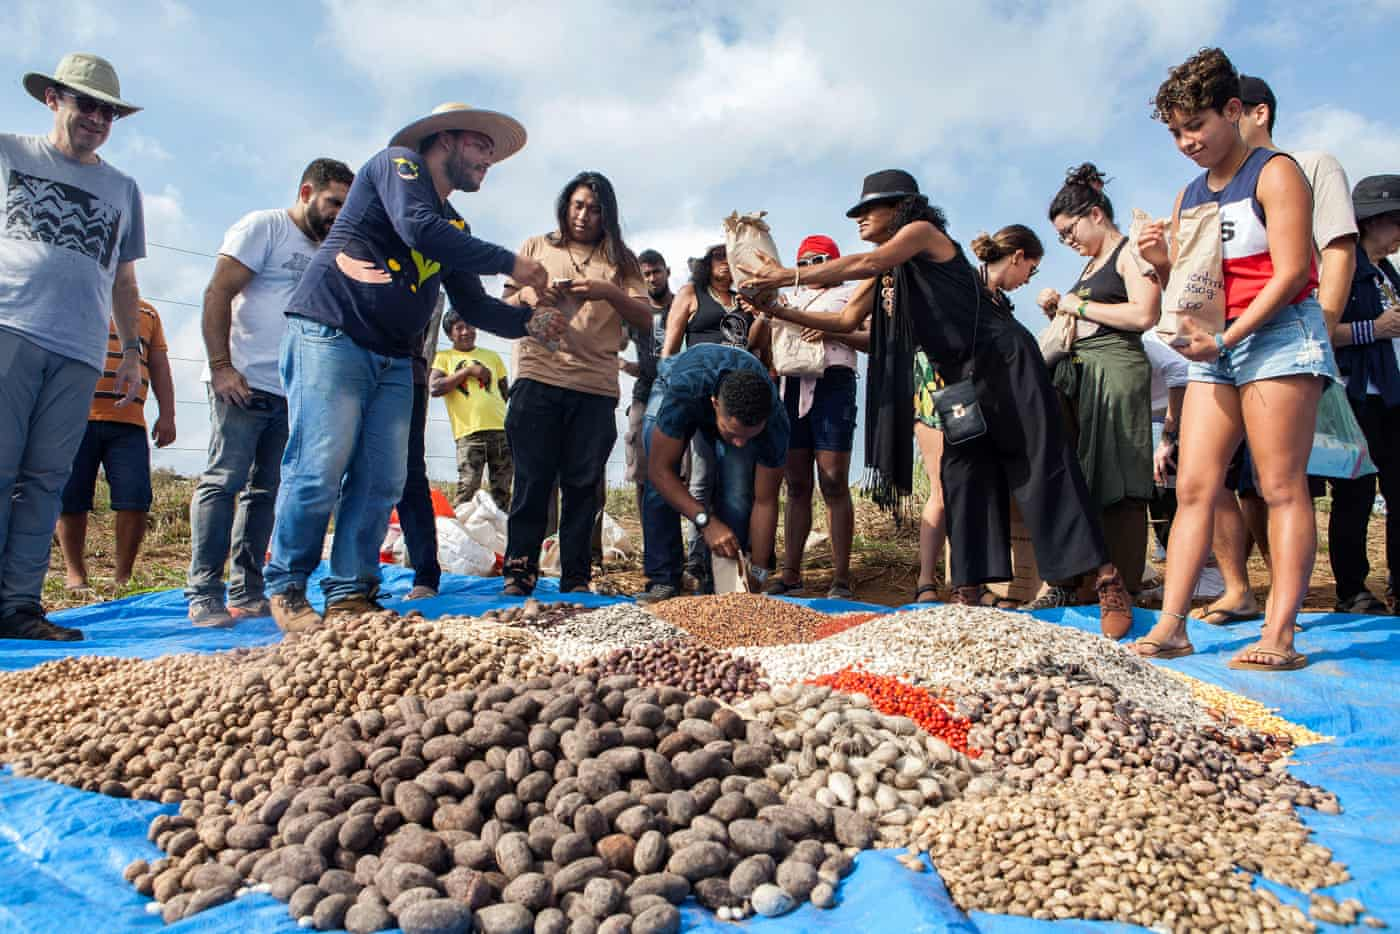 Activists hold climate conference deep in the Amazon rainforest